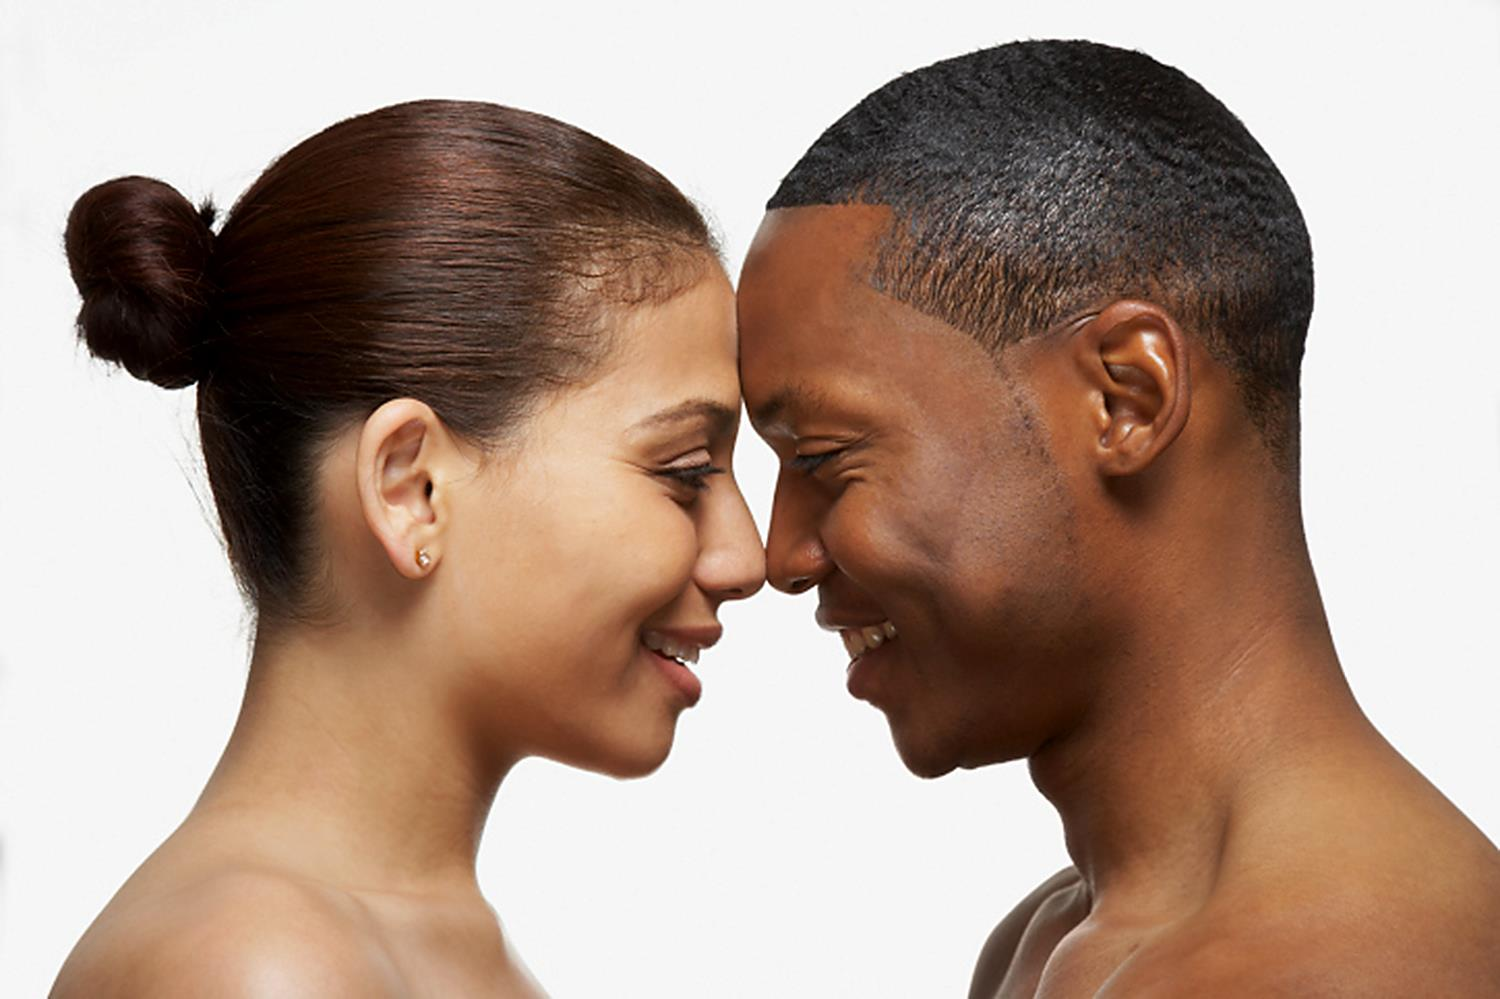 east granby black girls personals Free to join & browse - 1000's of singles in east granby, connecticut - interracial dating, relationships & marriage online.